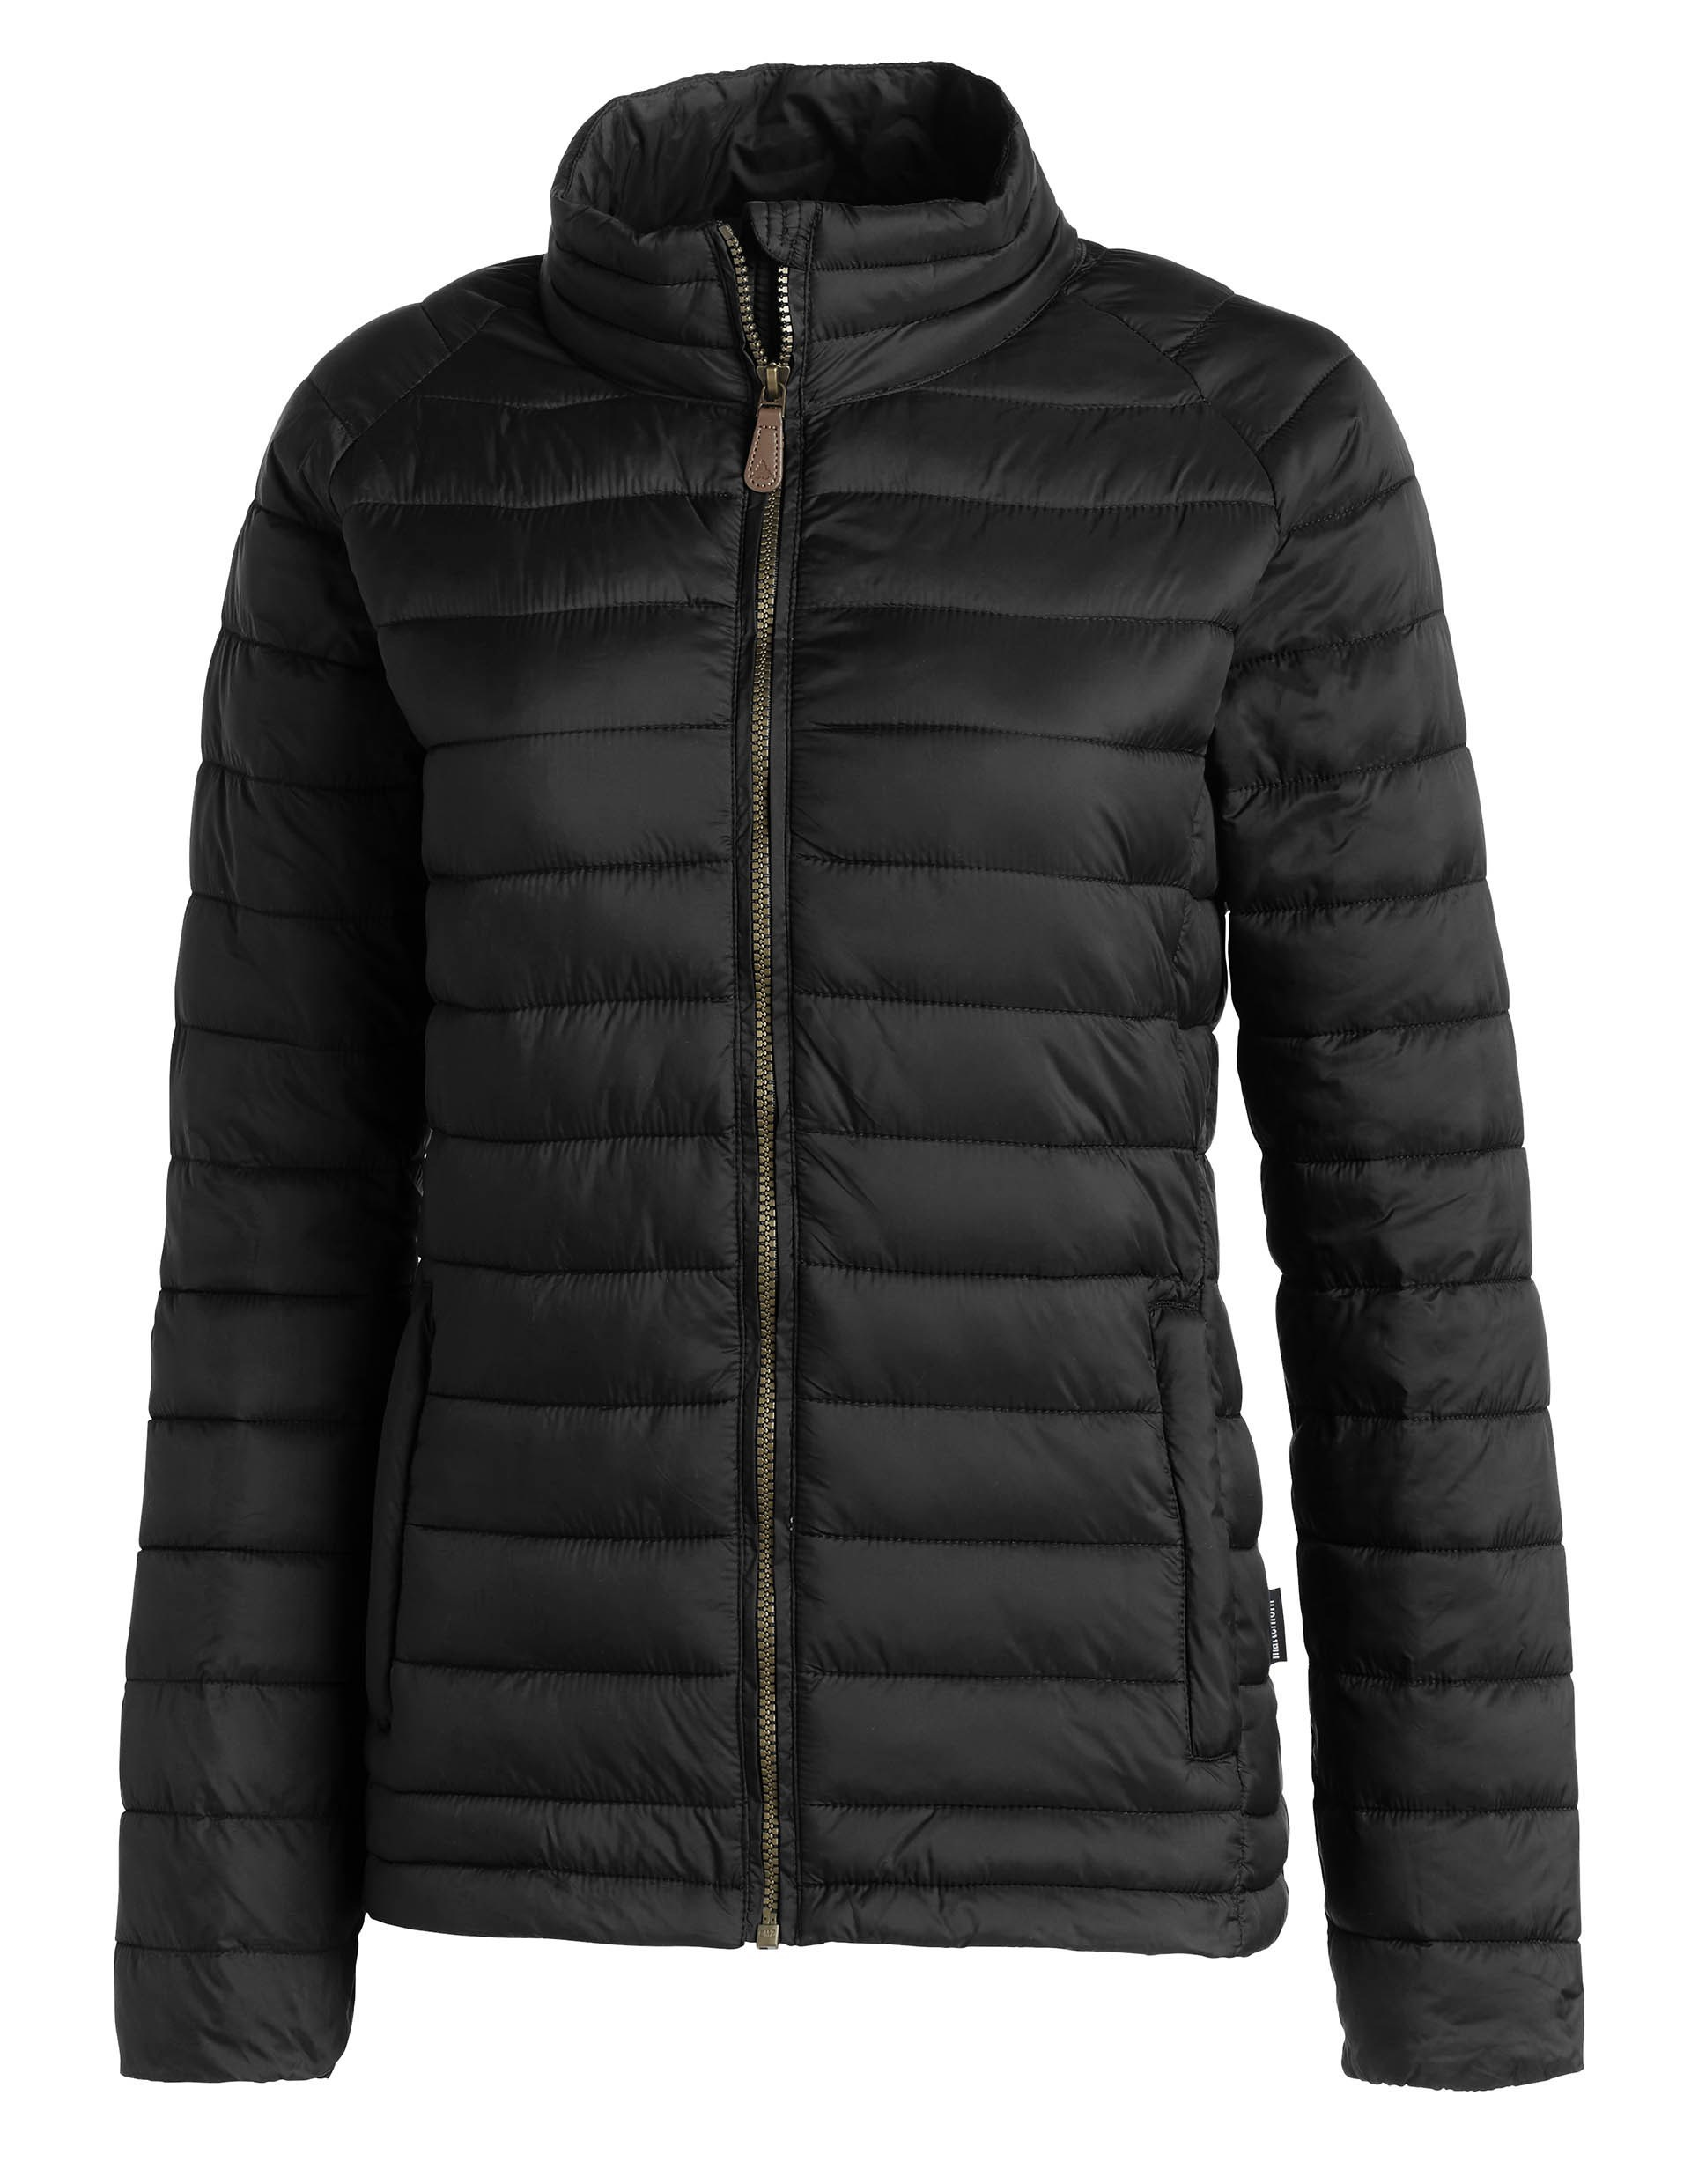 Matterhorn MH-450D Light Quilted Jacket Ladies Black 34